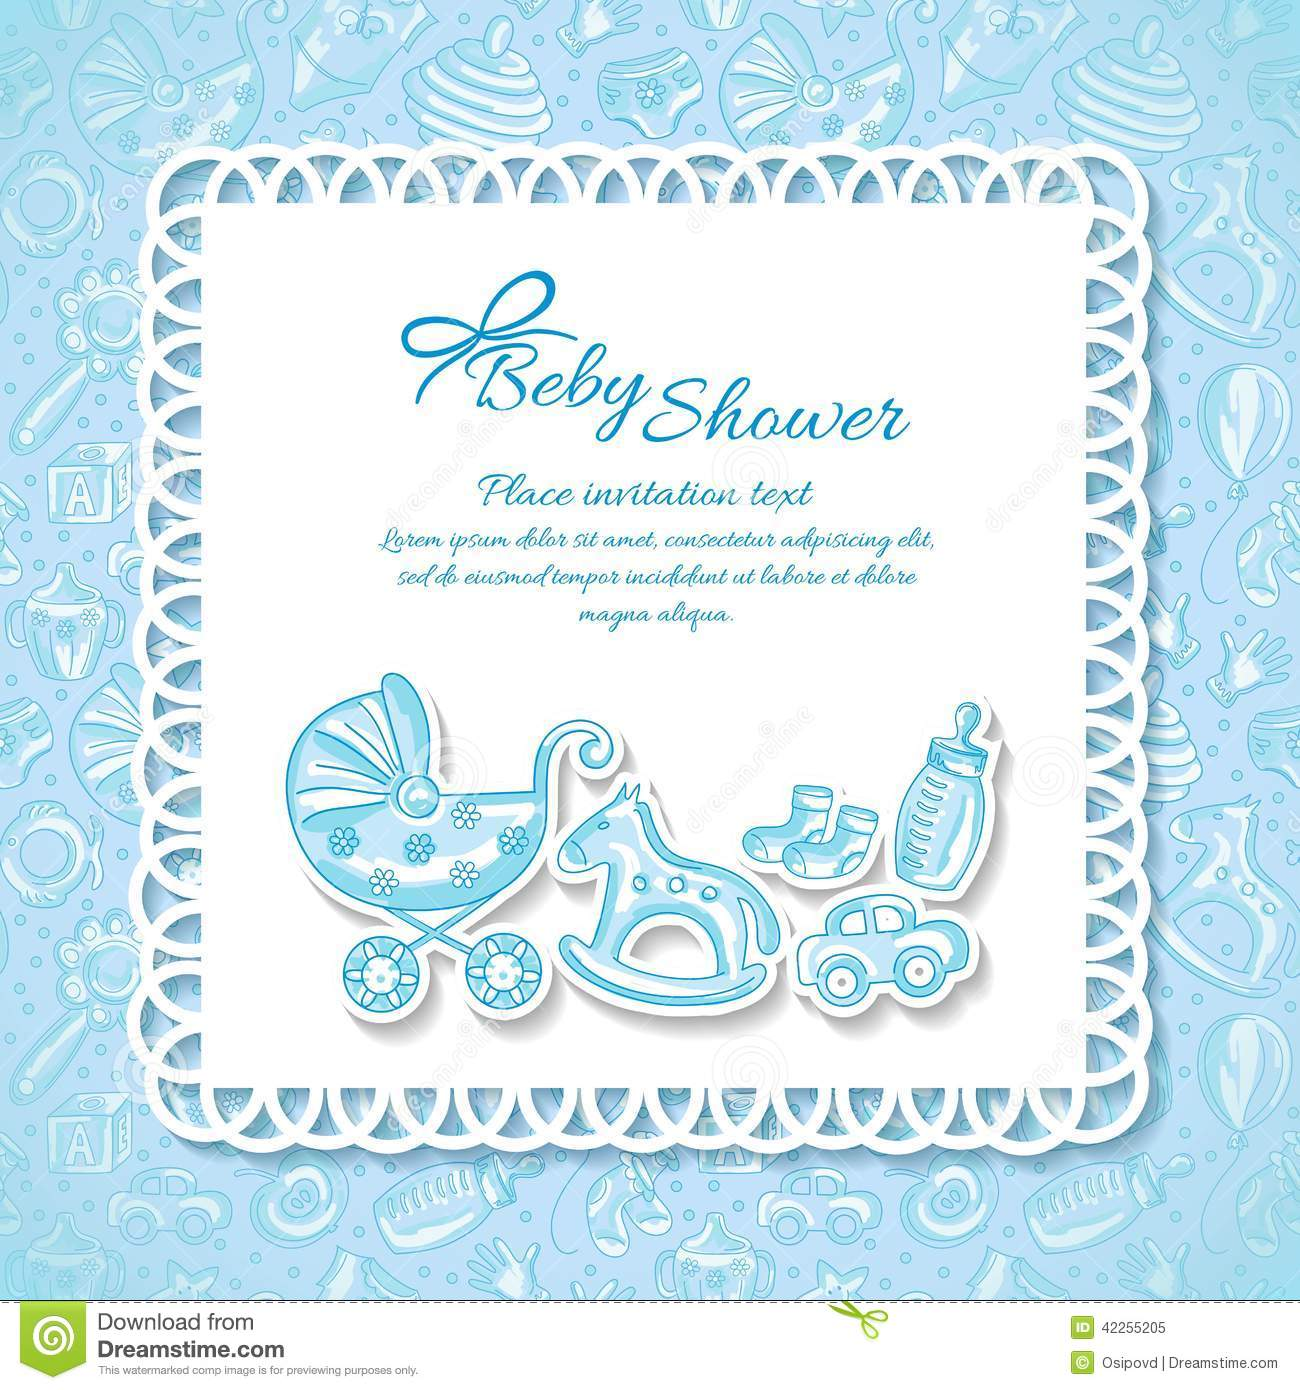 Full Size of Baby Shower:stylish Baby Shower Wishes Picture Inspirations Baby Shower Wishes Baby Shower Greeting Card For Baby Boy Stock Vector Illustration Download Comp